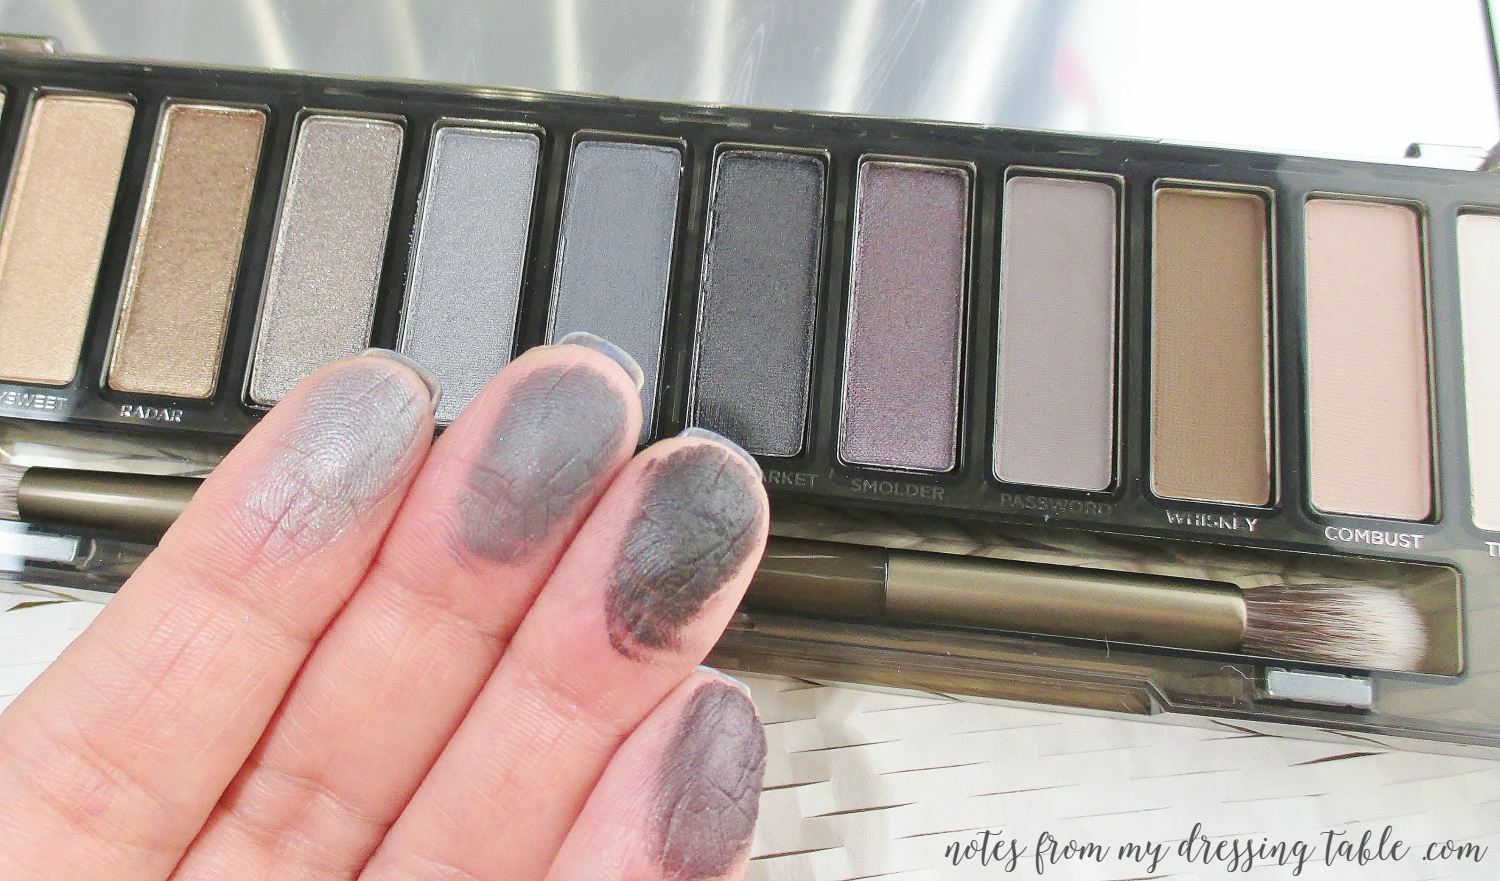 Urban Decay NAKED Smokey Palette Smokey Sades Finger Swatches notesfrommydressingtable.com